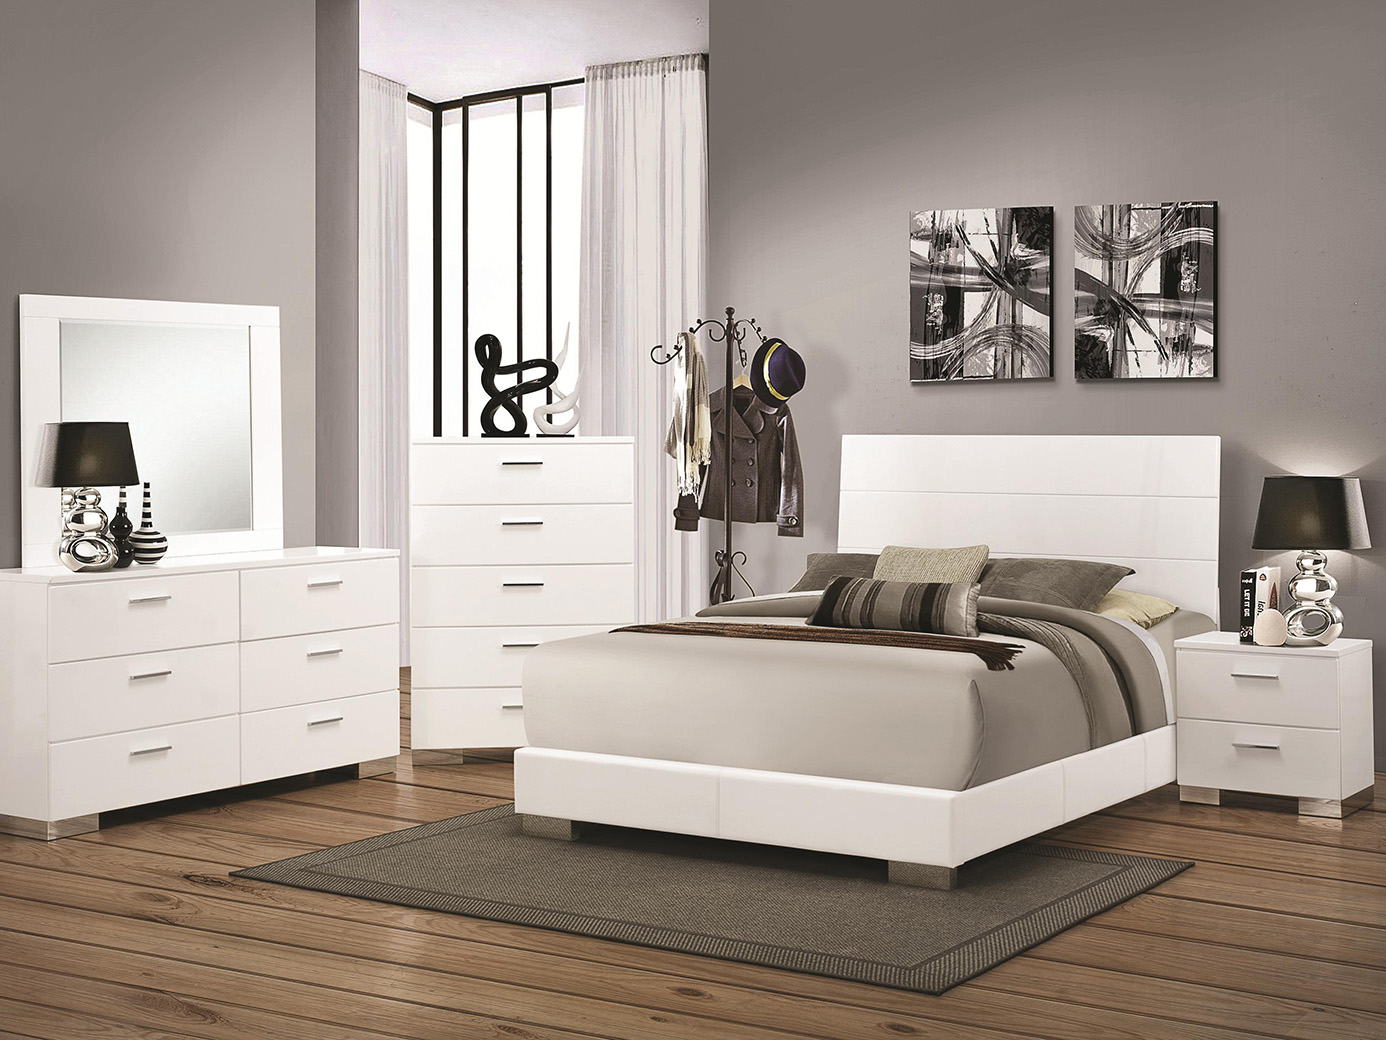 Rana Furniture Bedroom Sets Jeremaine White Mirror